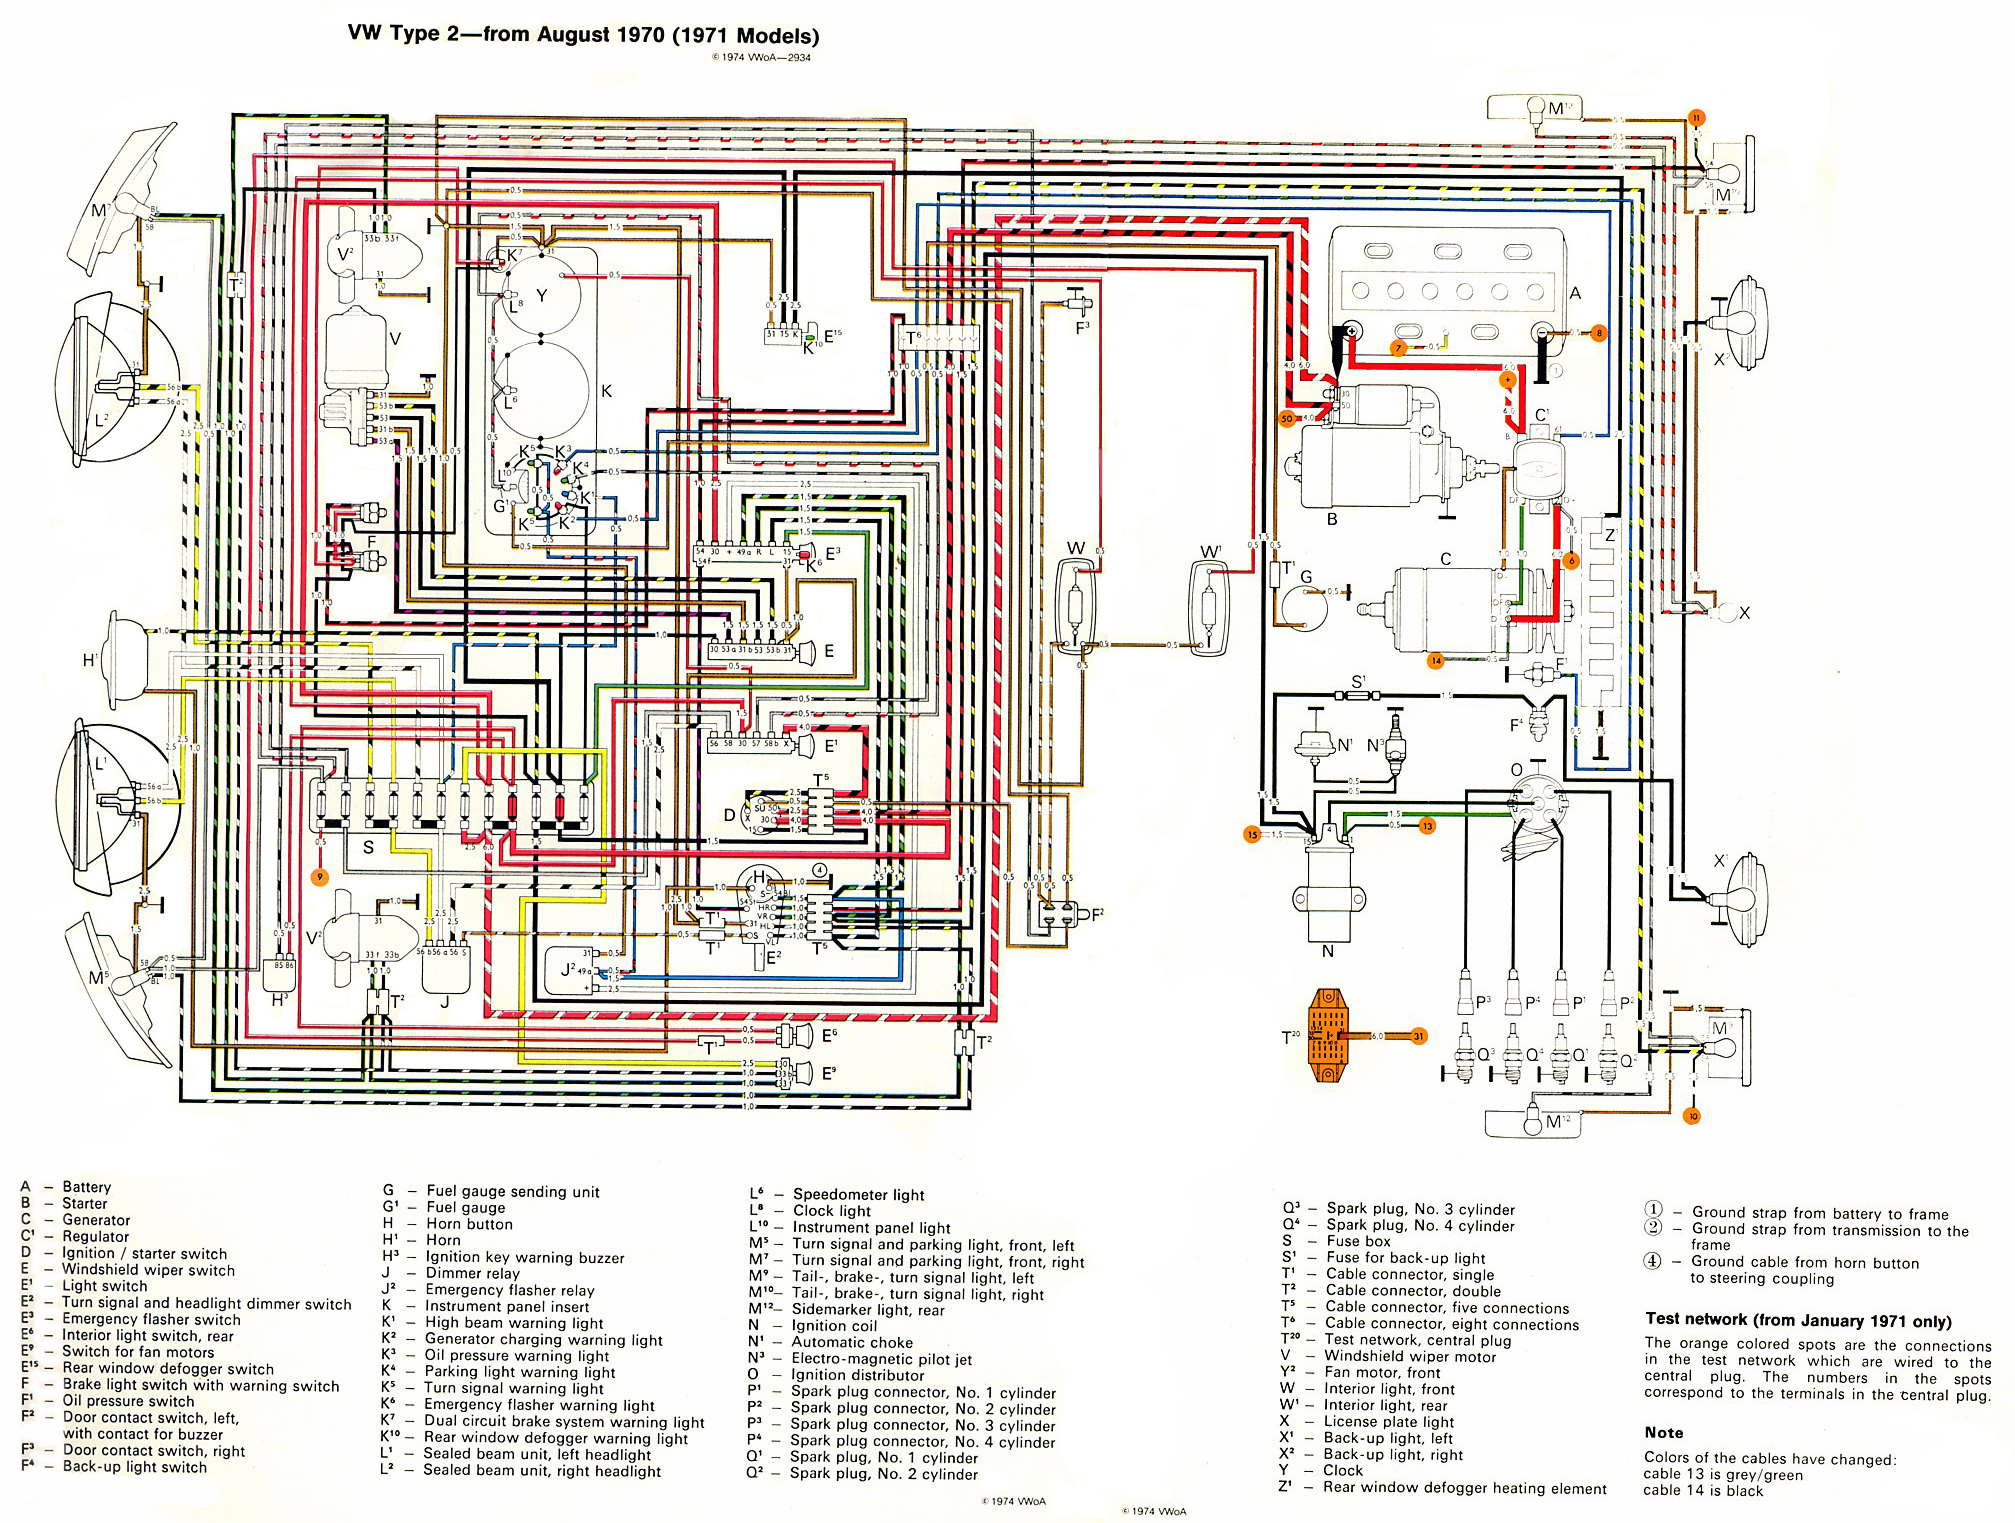 baybus_71_fixed vw t4 horn wiring diagram efcaviation com vw t4 fuse box wiring diagram at soozxer.org